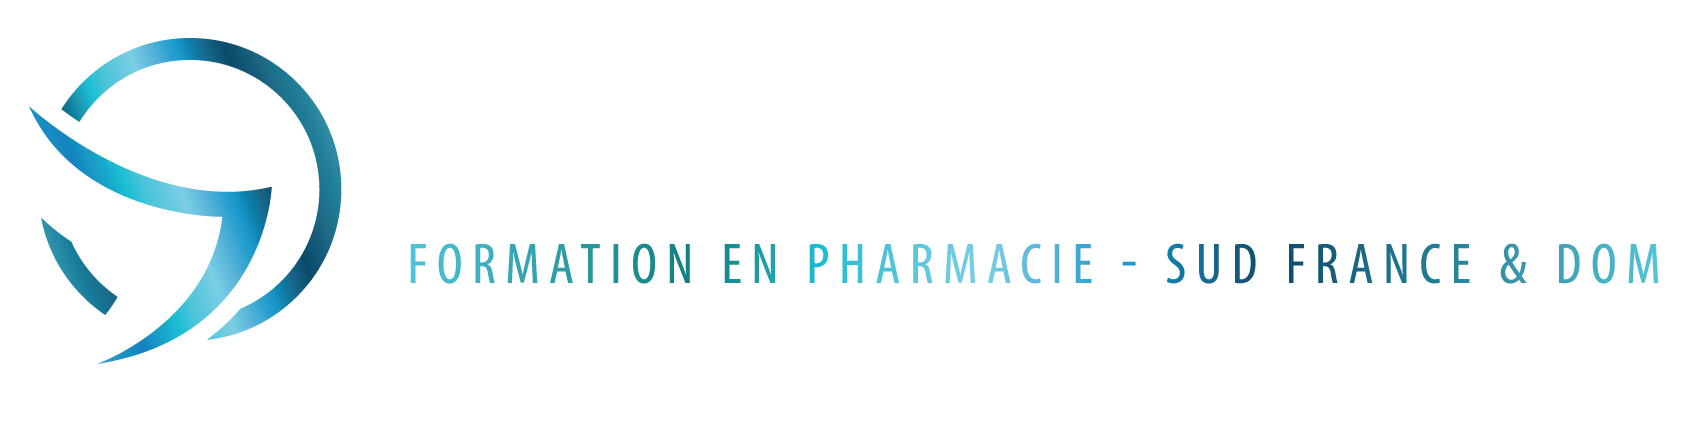 Orland Formation Logo